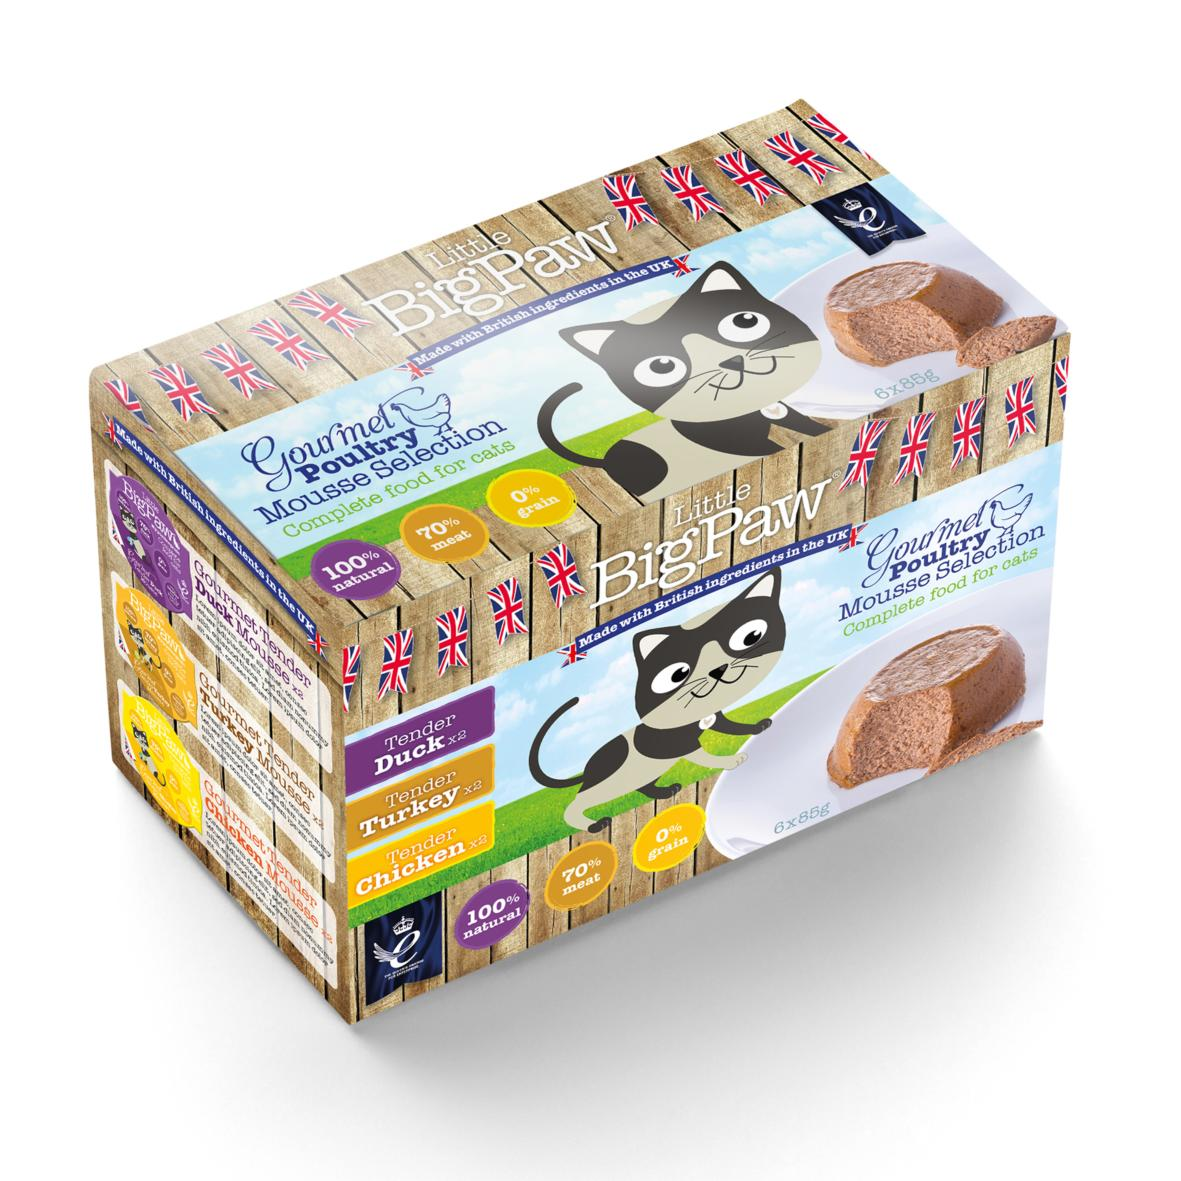 Little BigPaw Gourmet Poultry Mousse Selection 6x85g